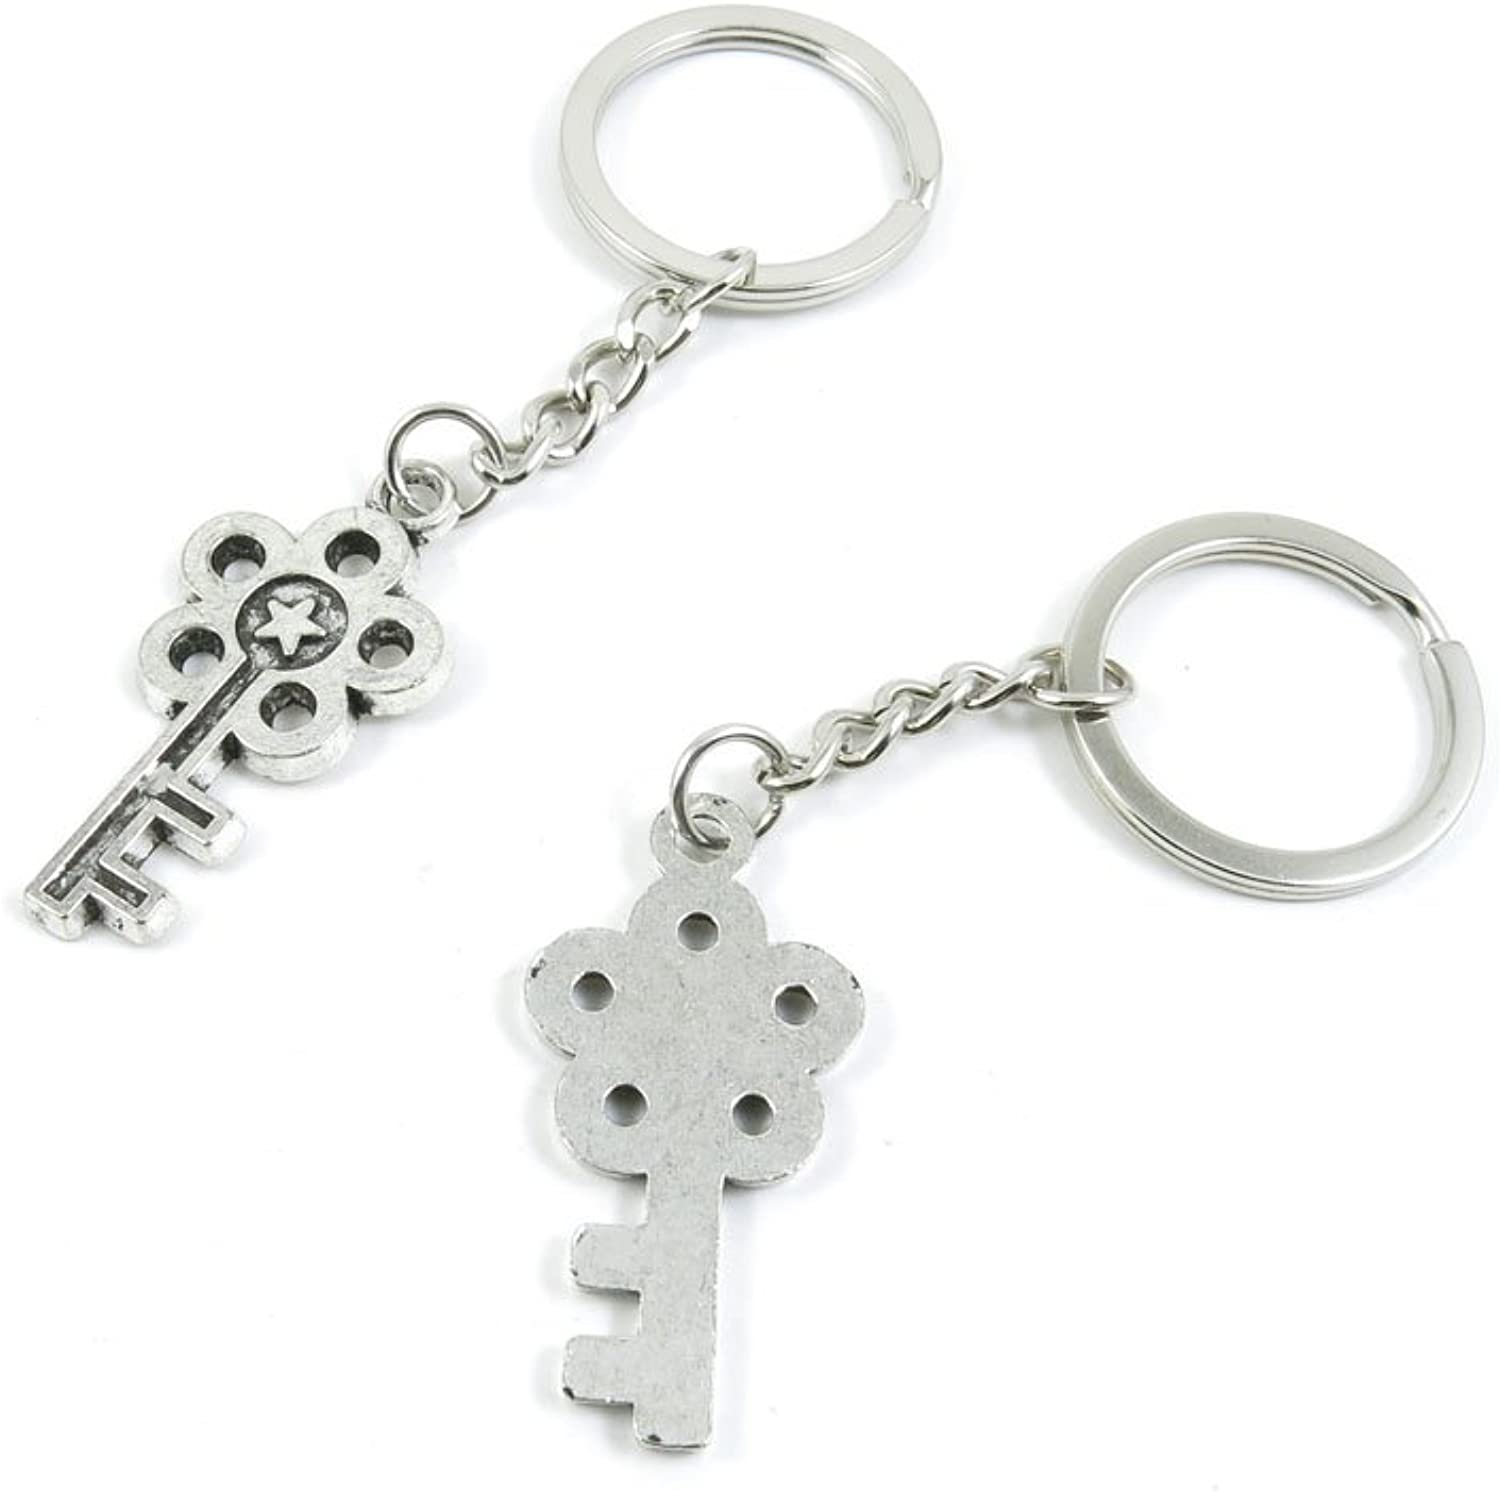 100 Pieces Keychain Keyring Door Car Key Chain Ring Tag Charms Bulk Supply Jewelry Making Clasp Findings R5MB9U Star Skeleton Key